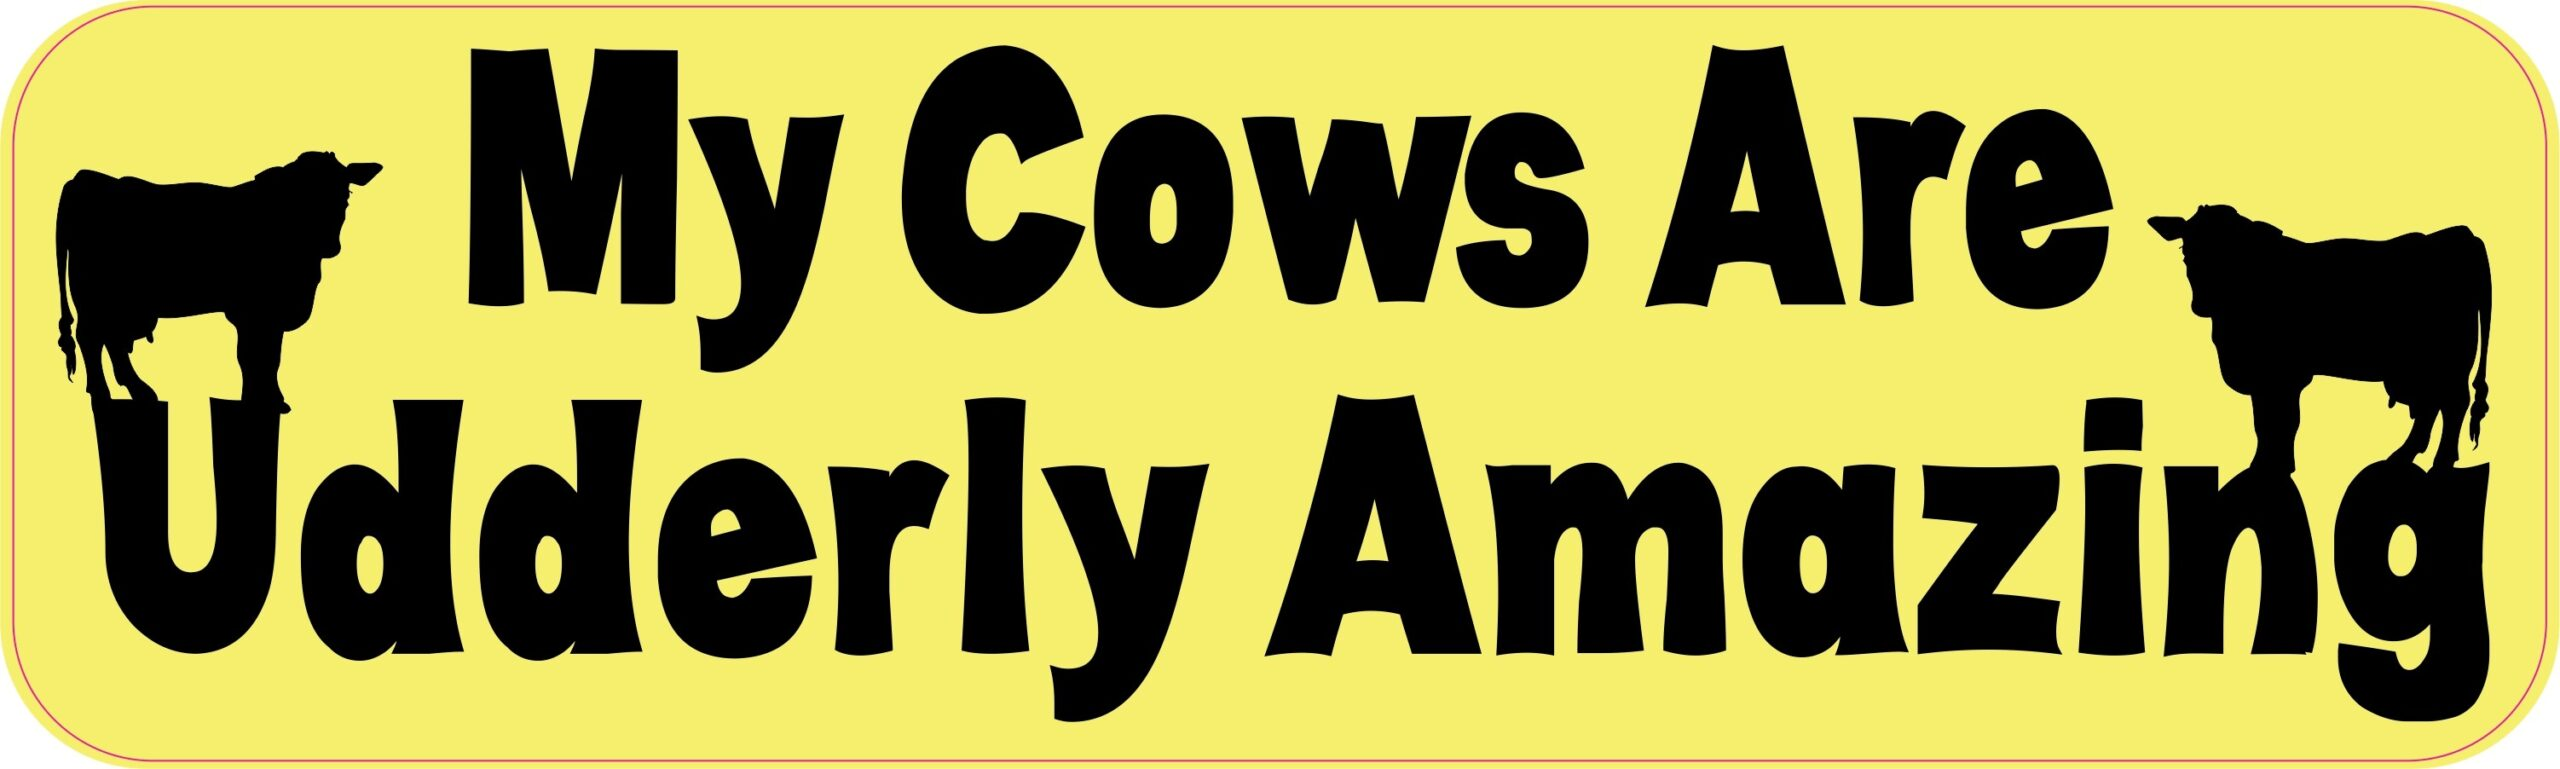 10in x 3in my cows are udderly amazing magnet magnetic car magnets